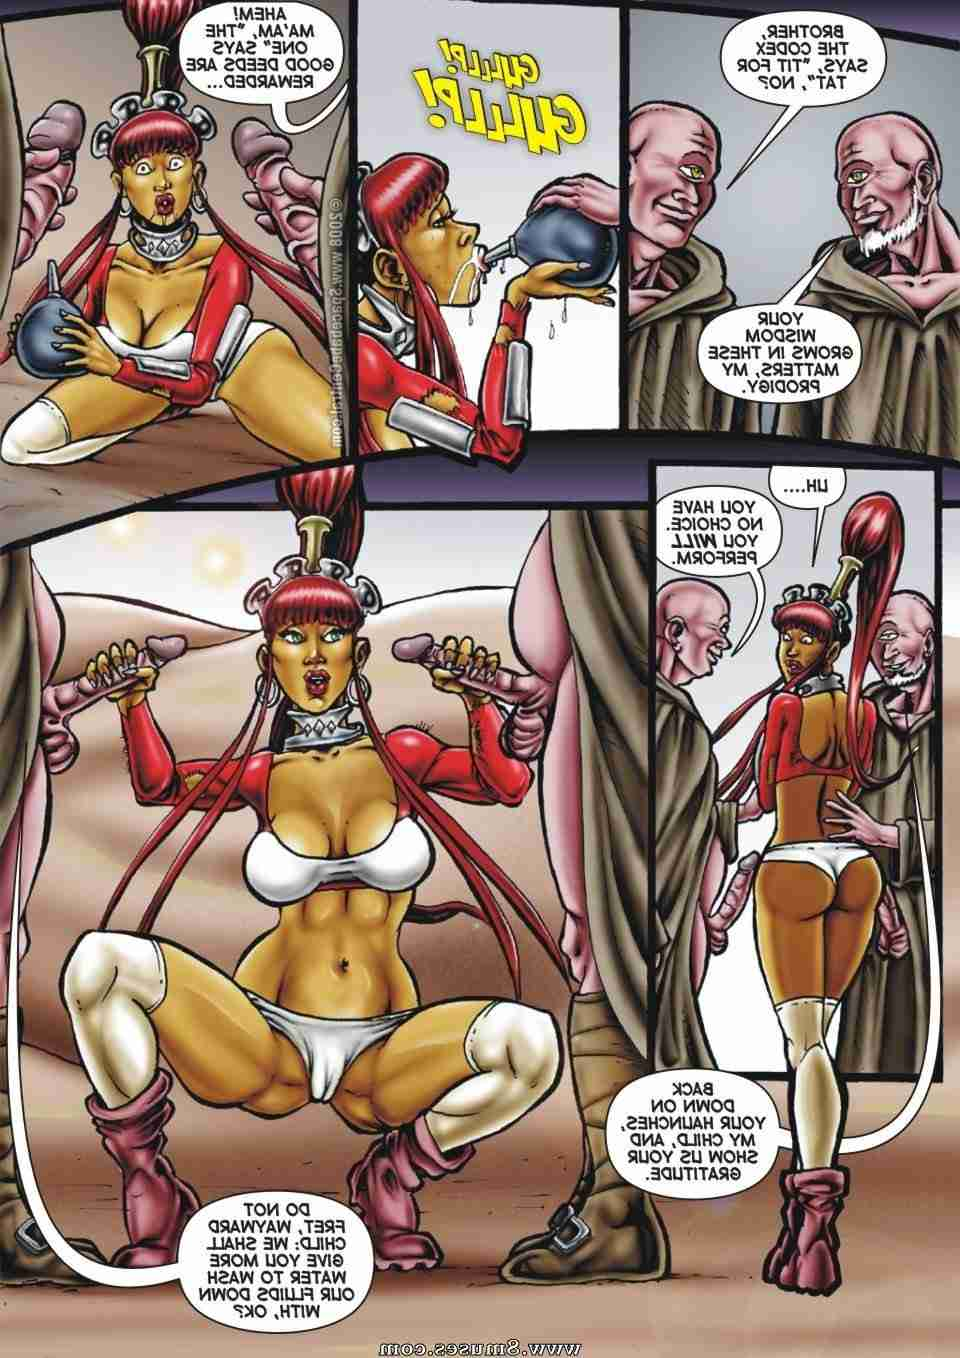 Central-Comics/Space-Babe-Central/Alien-Huntress Alien_Huntress__8muses_-_Sex_and_Porn_Comics_12.jpg